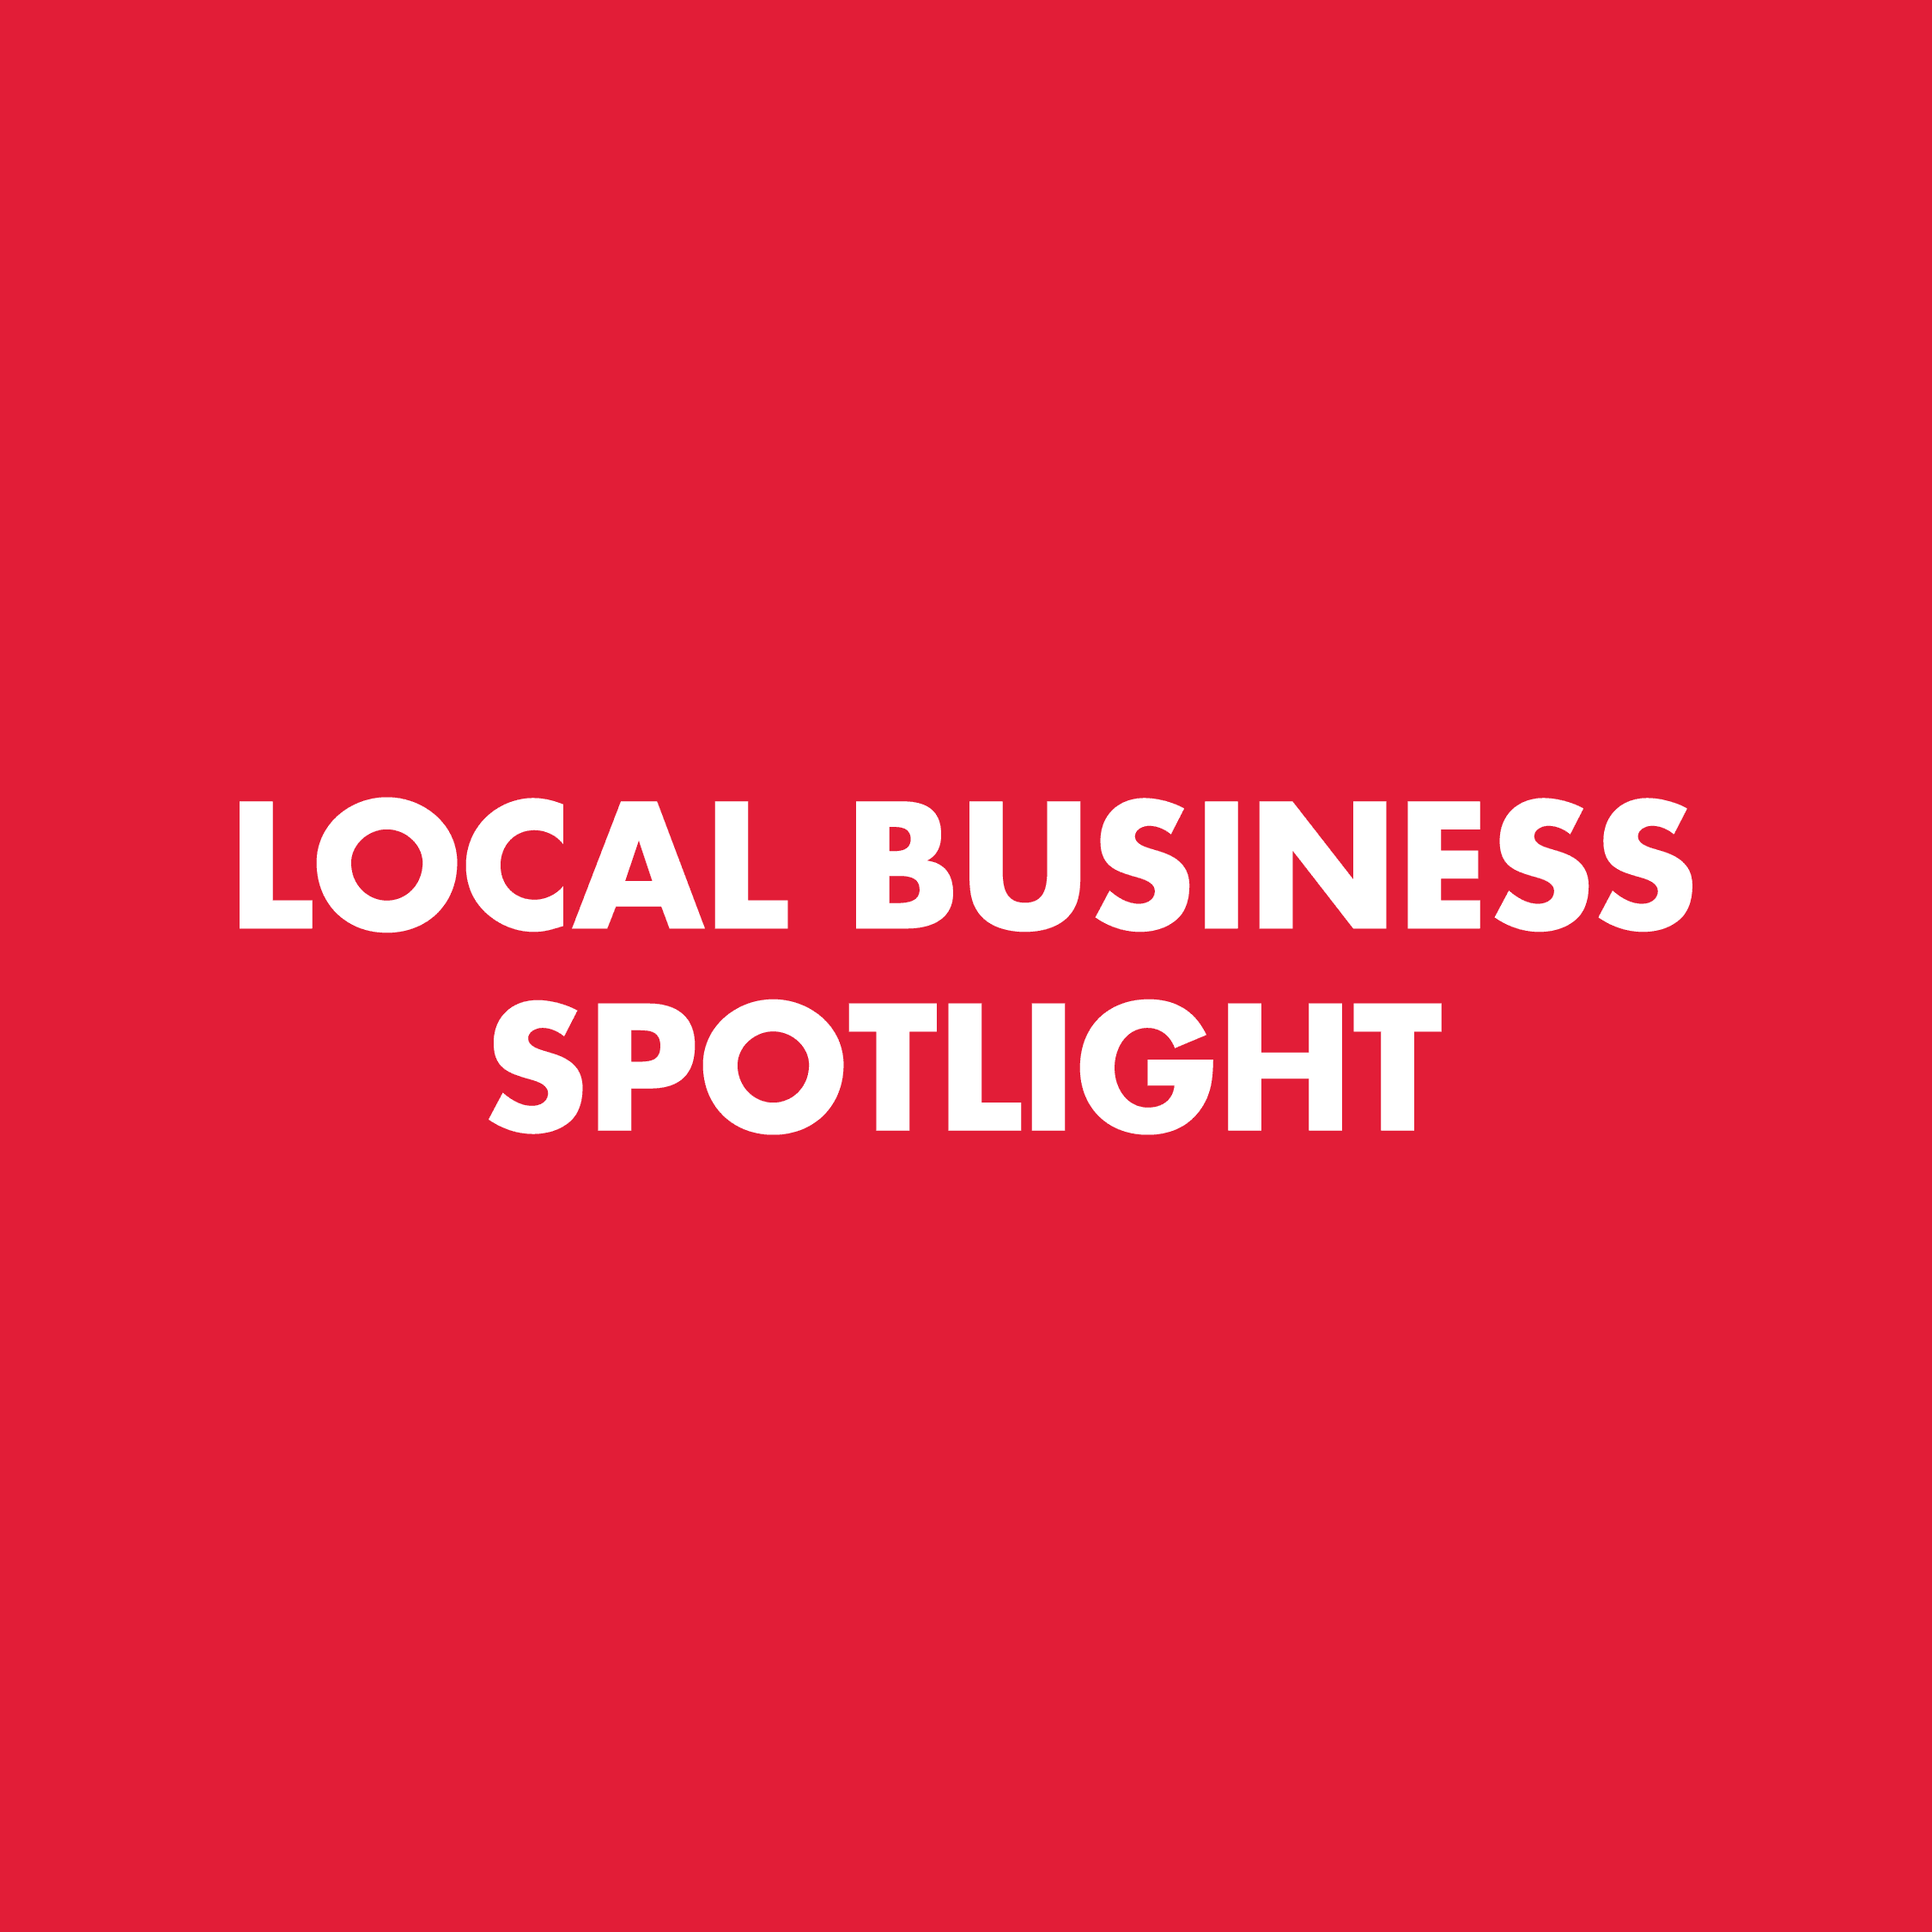 Local Business Spotlight this week